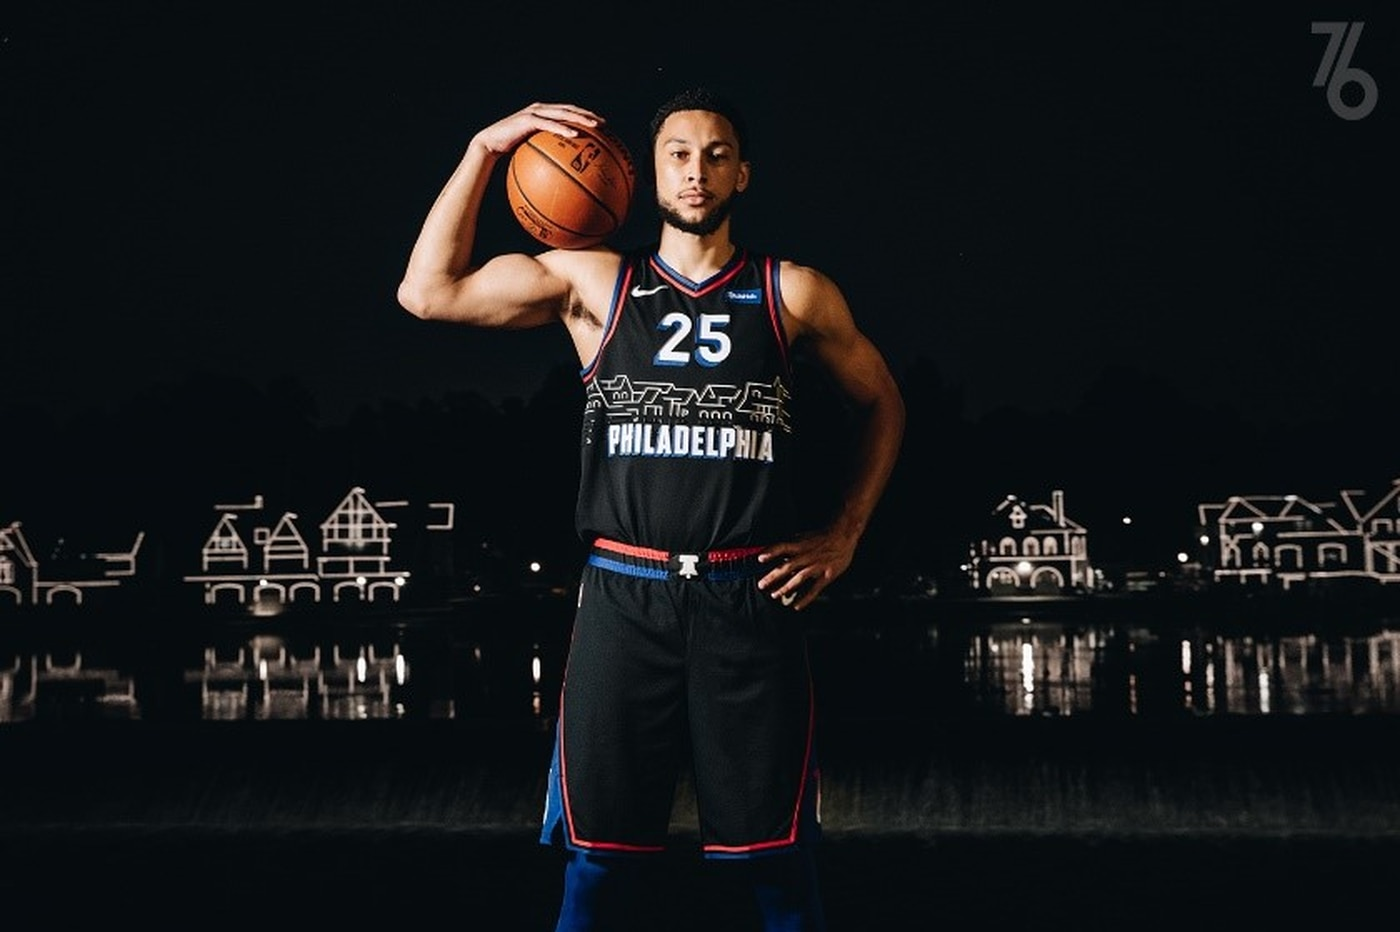 The Sixers unveil black city edition uniforms featuring Boathouse Row